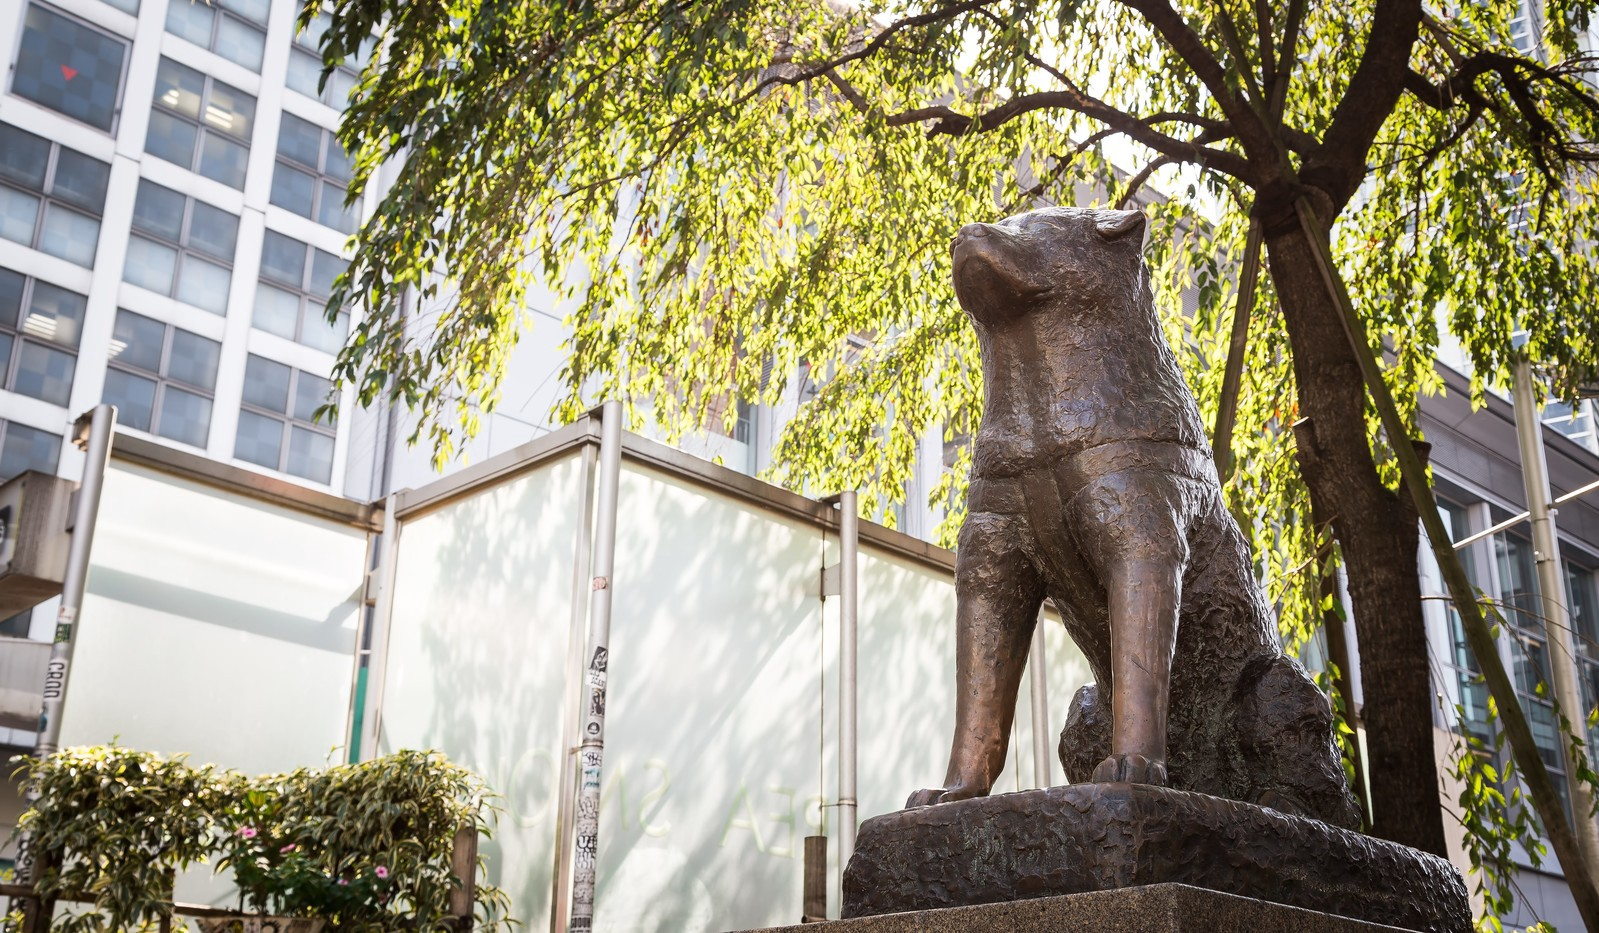 The iconic Hachiko Statue in front of Shibuya Station